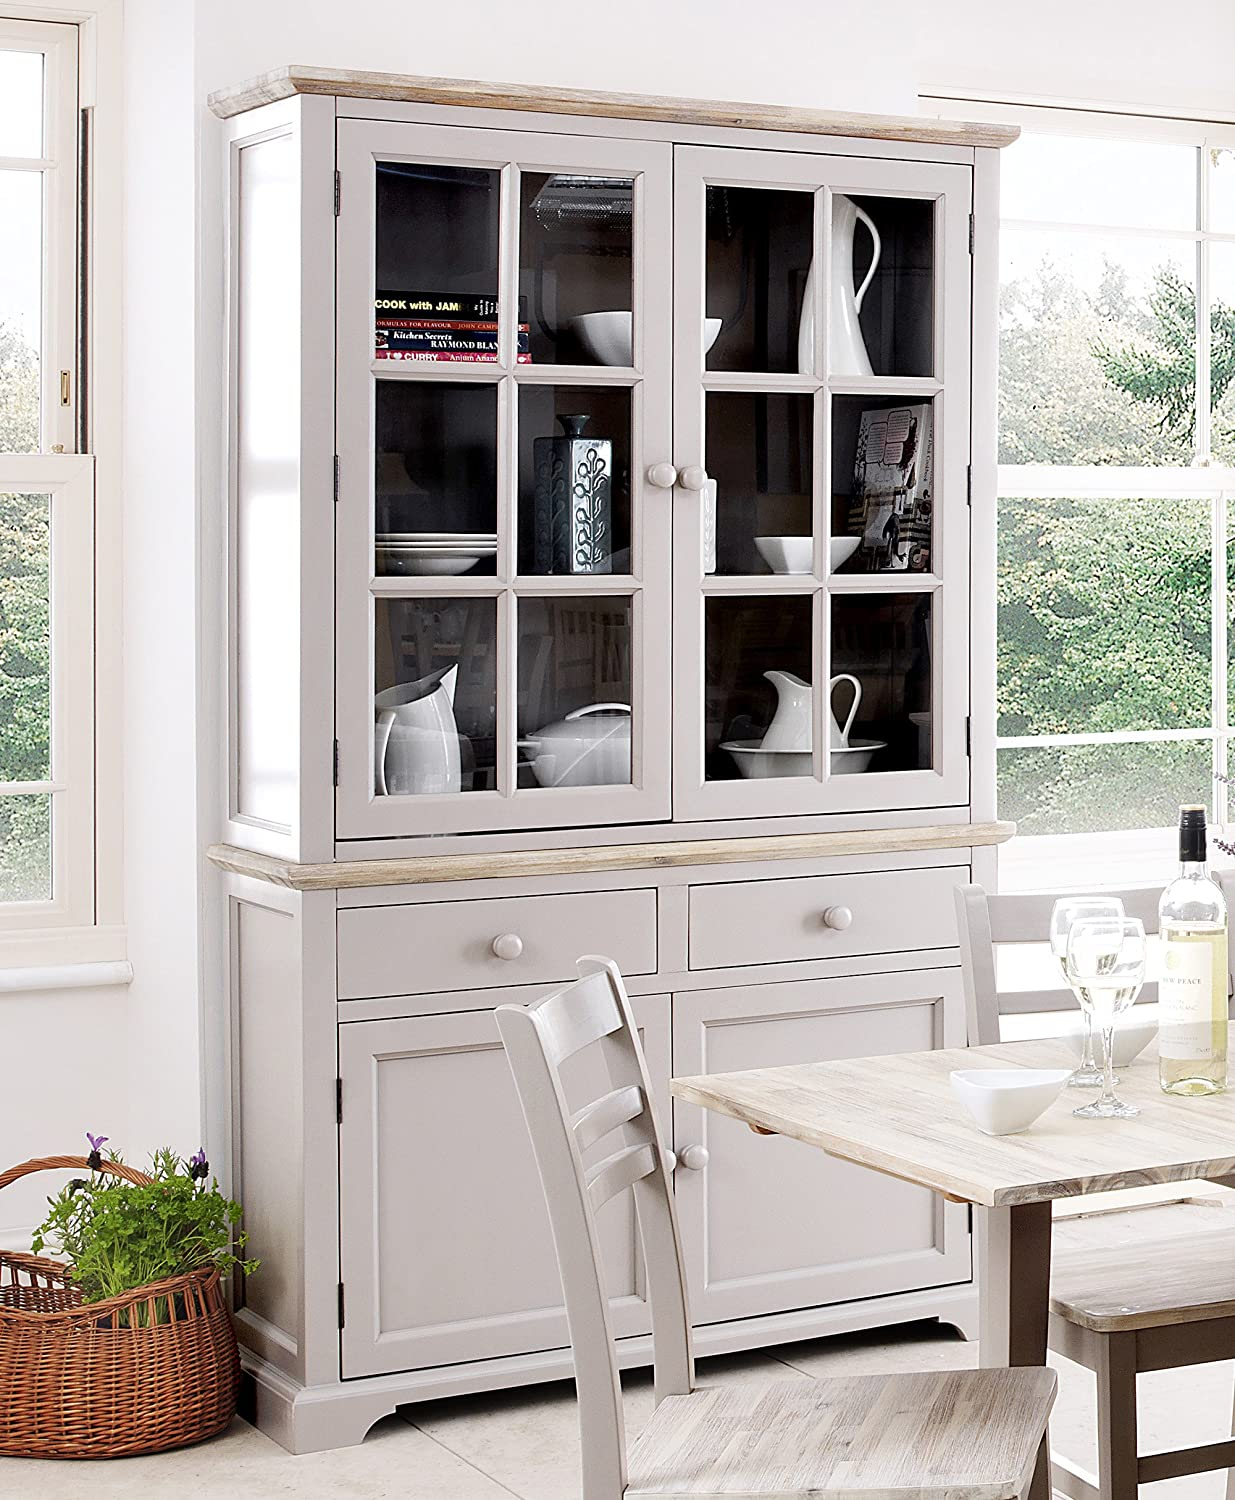 bridgeport collection drawer p antique dressers depot dresser home chests the decorators fully assembled white